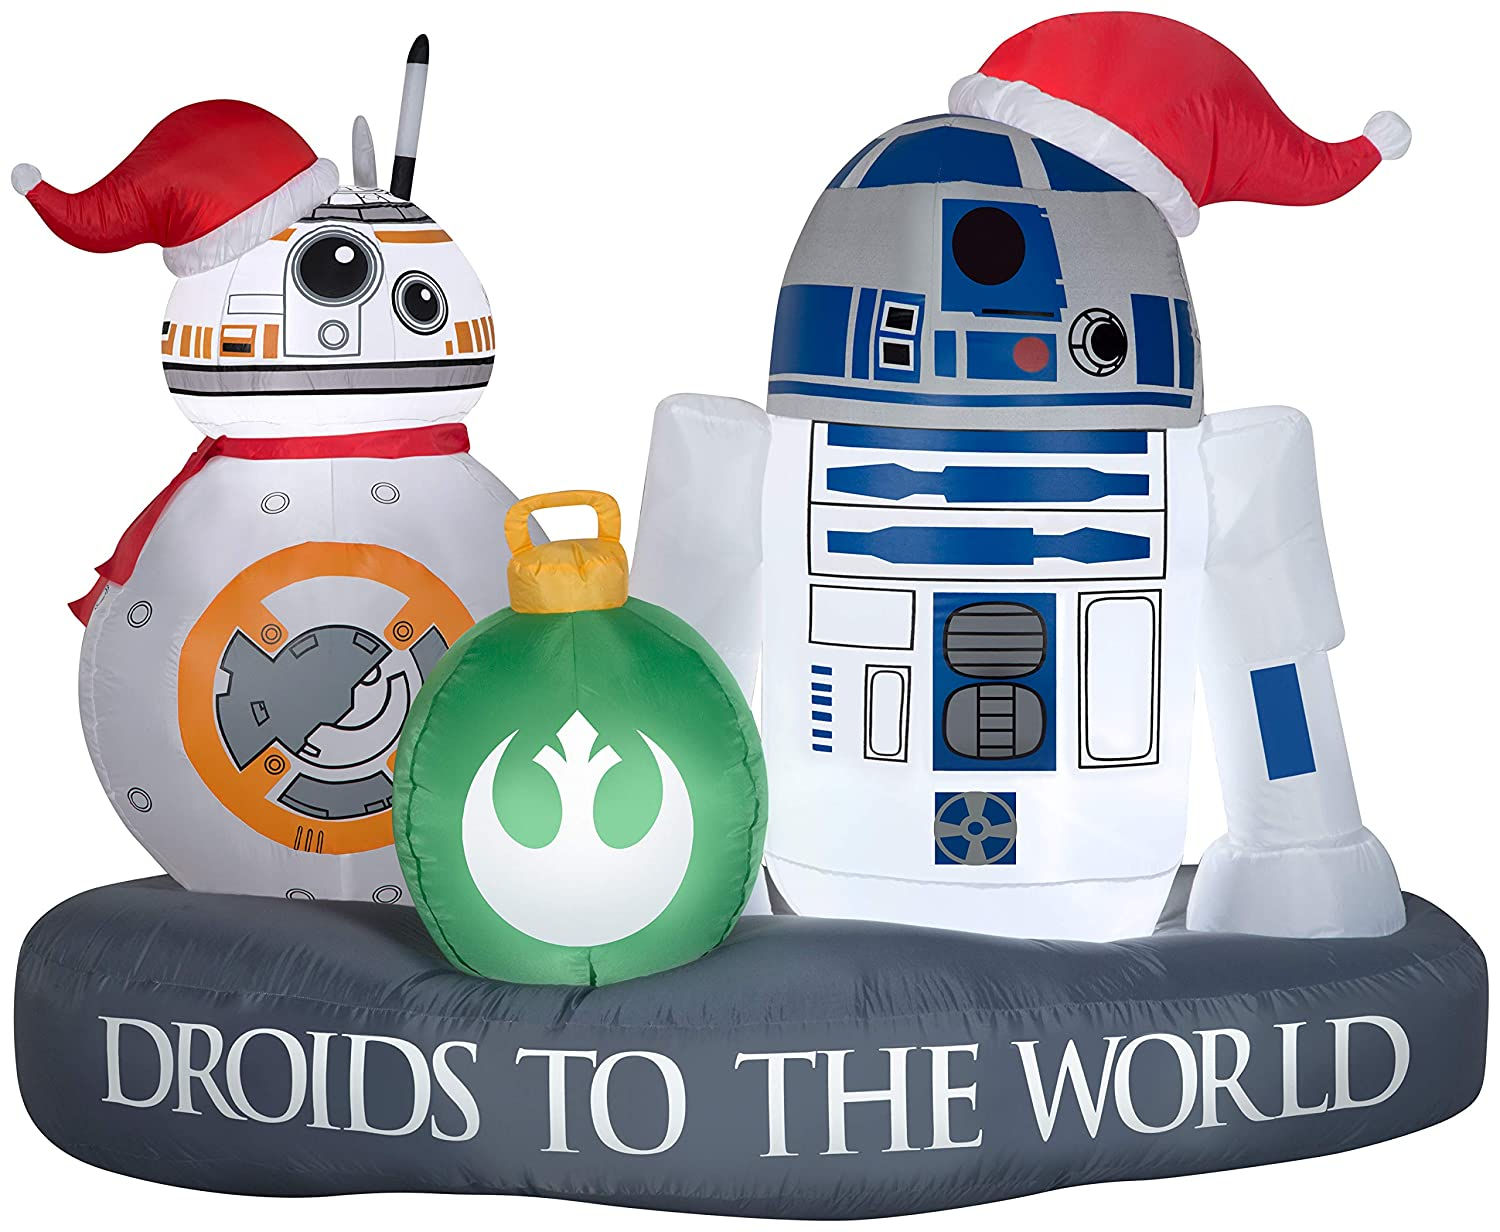 Star Wars Gemmy Christmas Inflatable 5 R2-D2 and BB-8